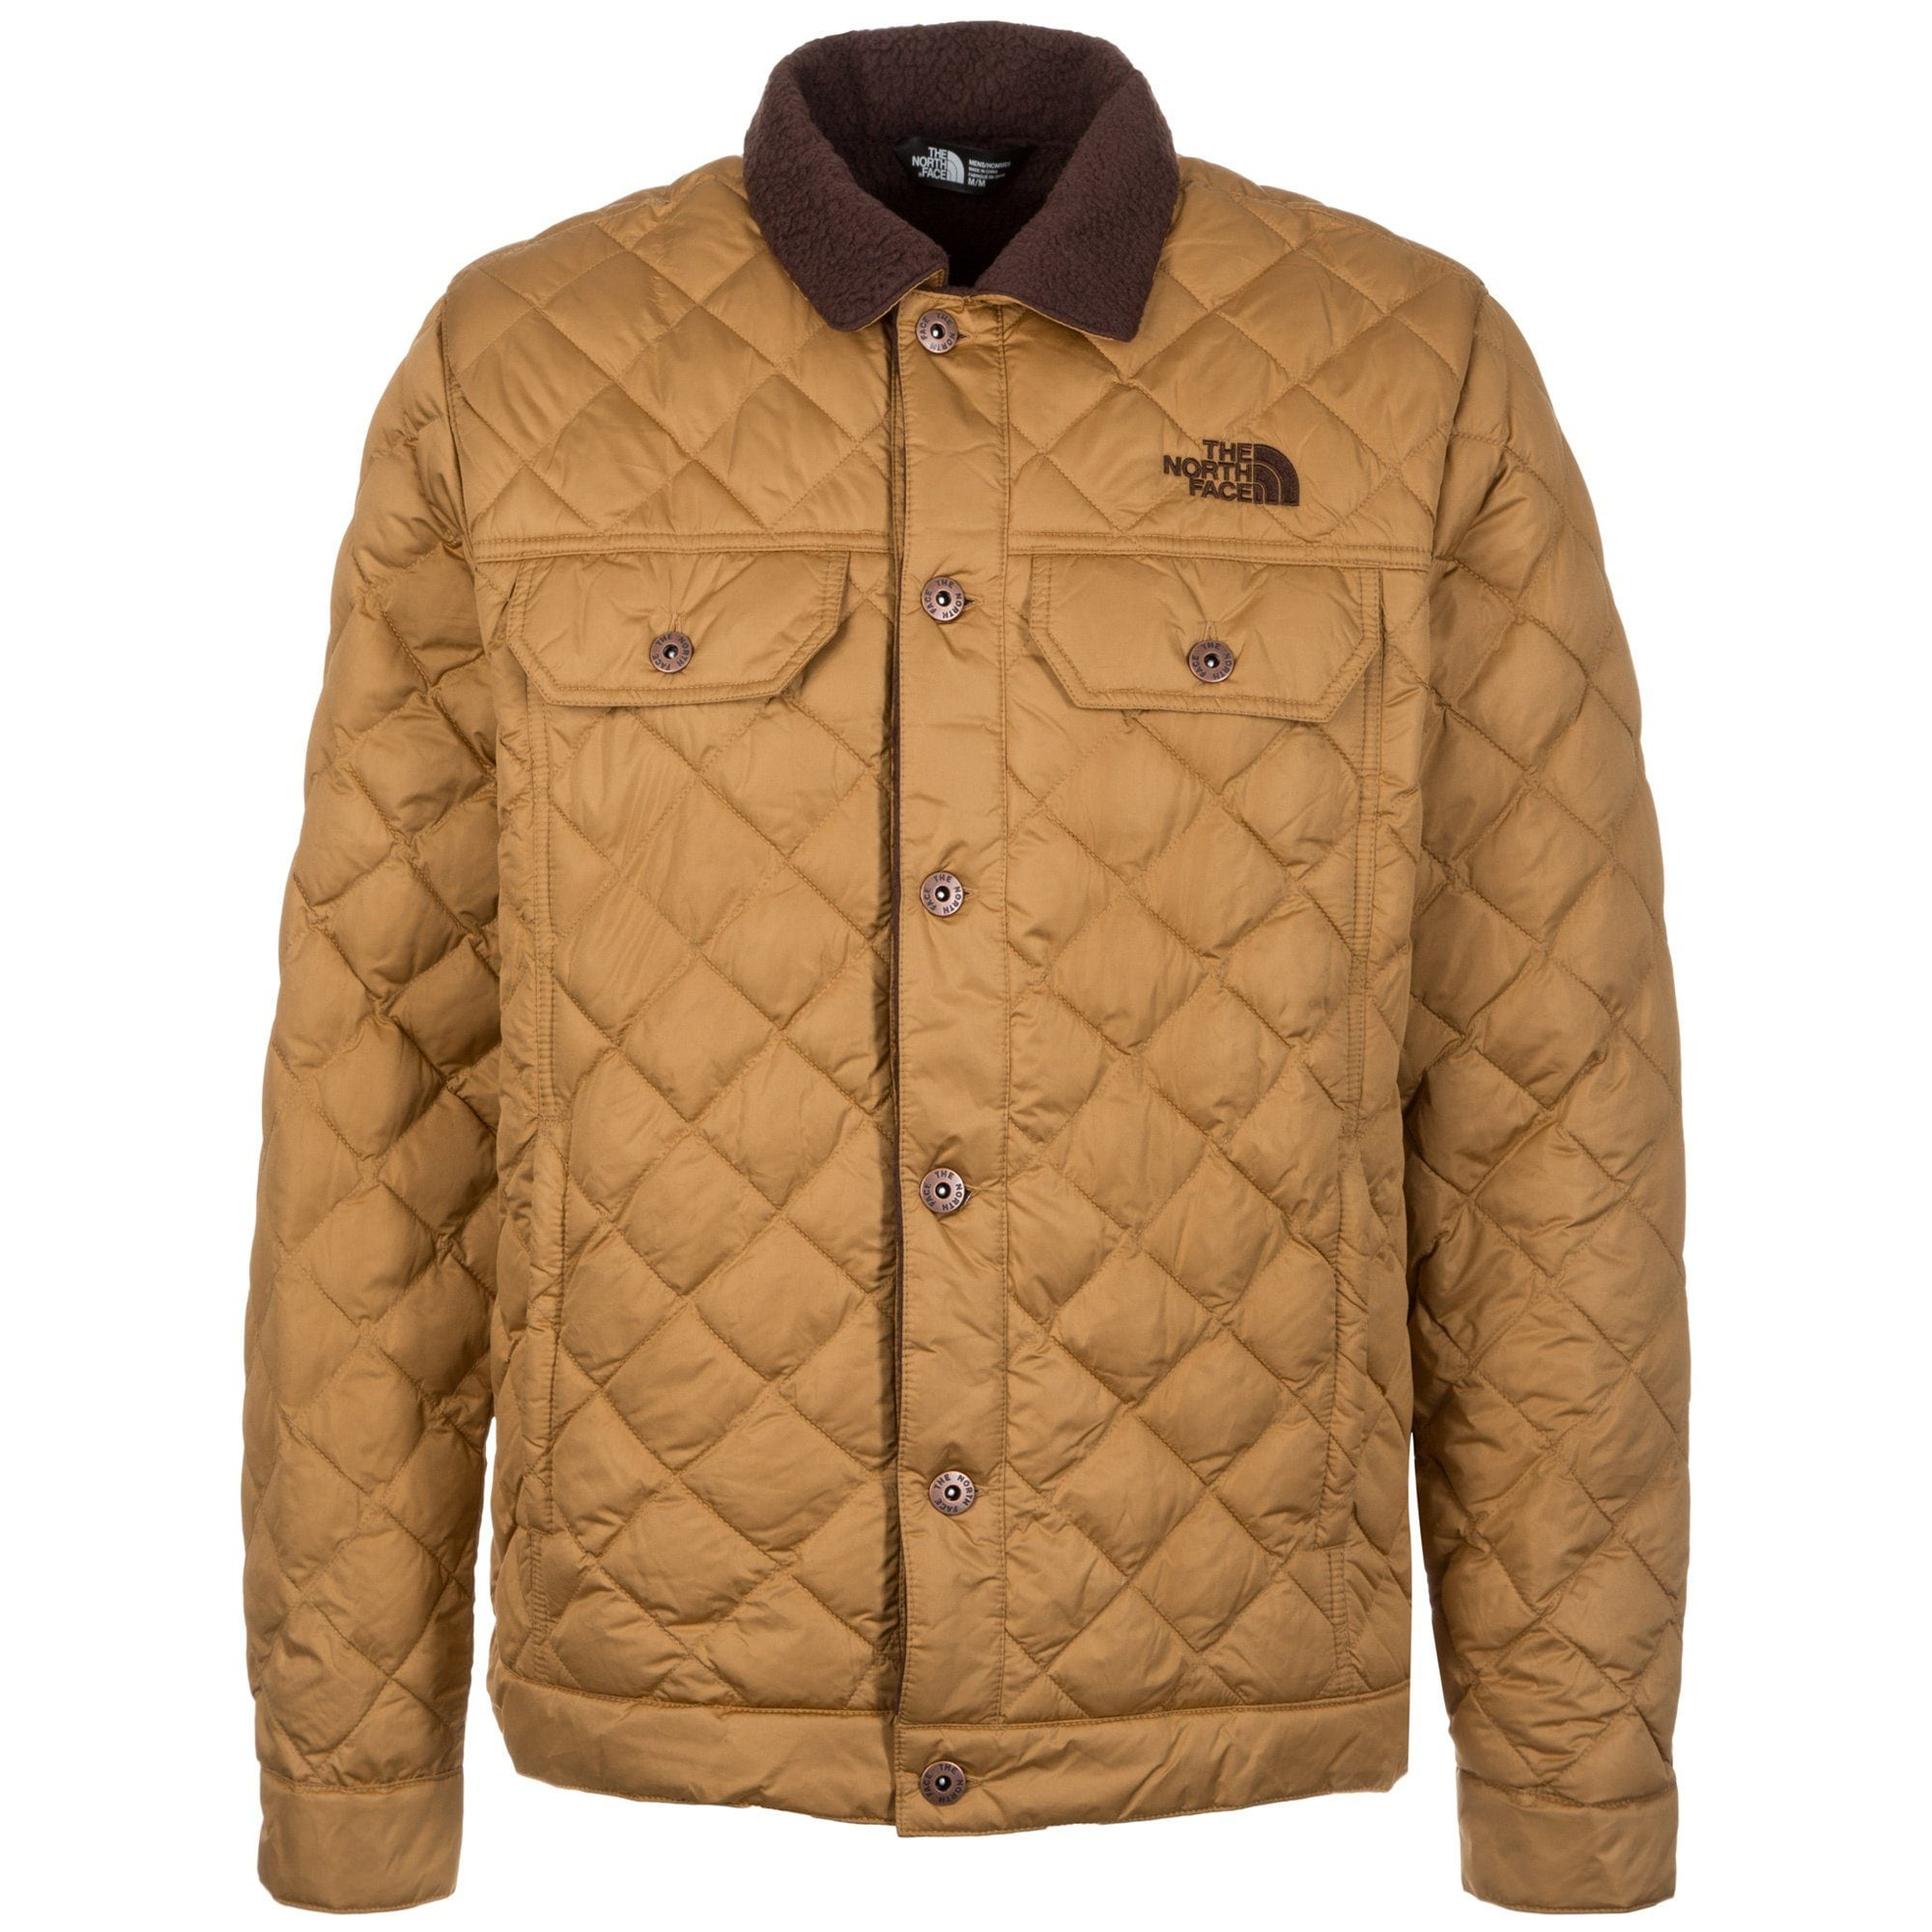 lowest price 5a3ca 7f27e THE NORTH FACE Sherpa Thermoball Jacke Herren bestellen » BAUR